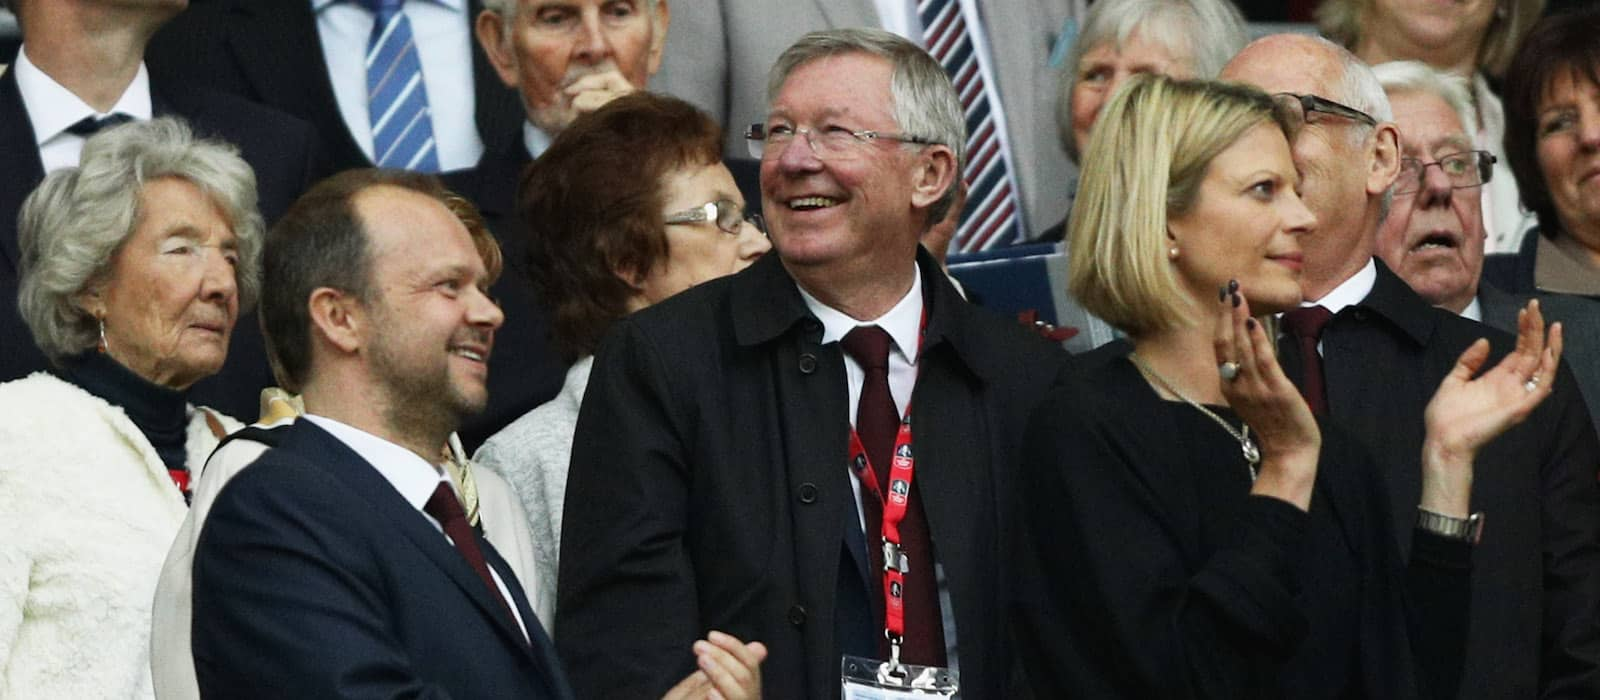 Ole Gunnar Solskjaer invites Sir Alex Ferguson to give team talk ahead of Liverpool